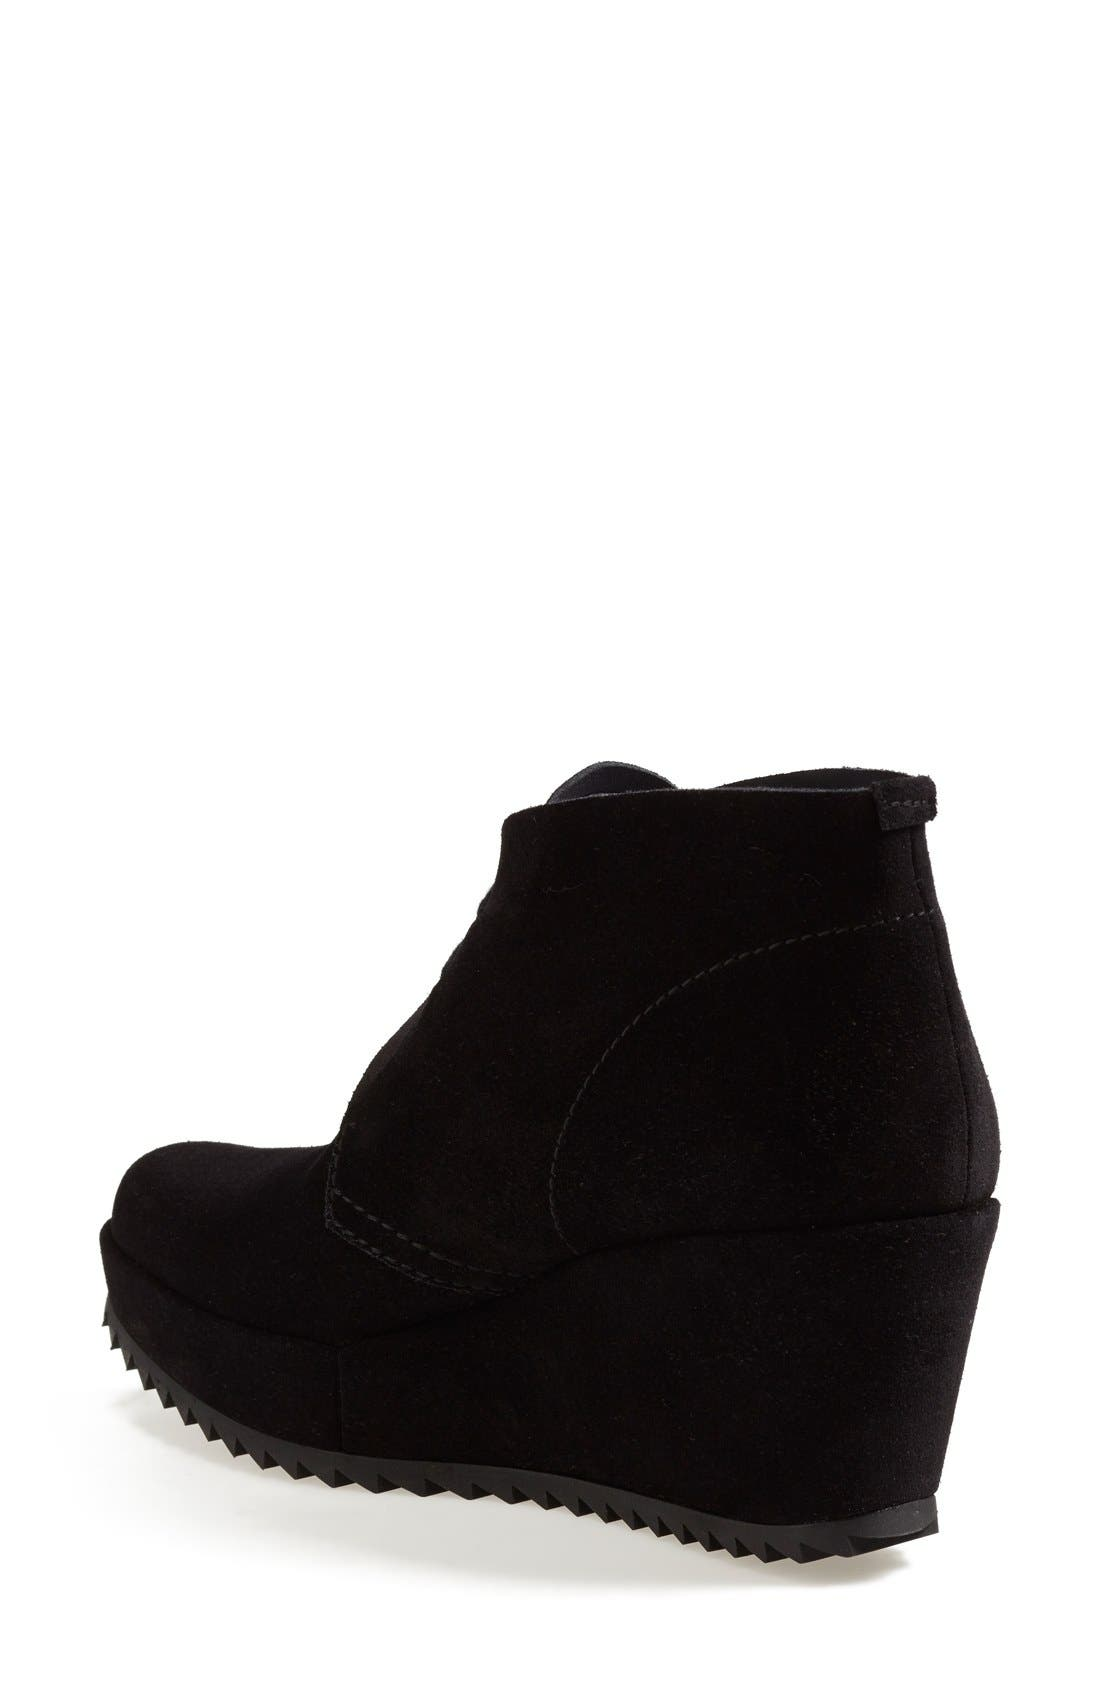 Alternate Image 2  - Pedro Garcia 'Fulvia' Wedge Bootie (Women)